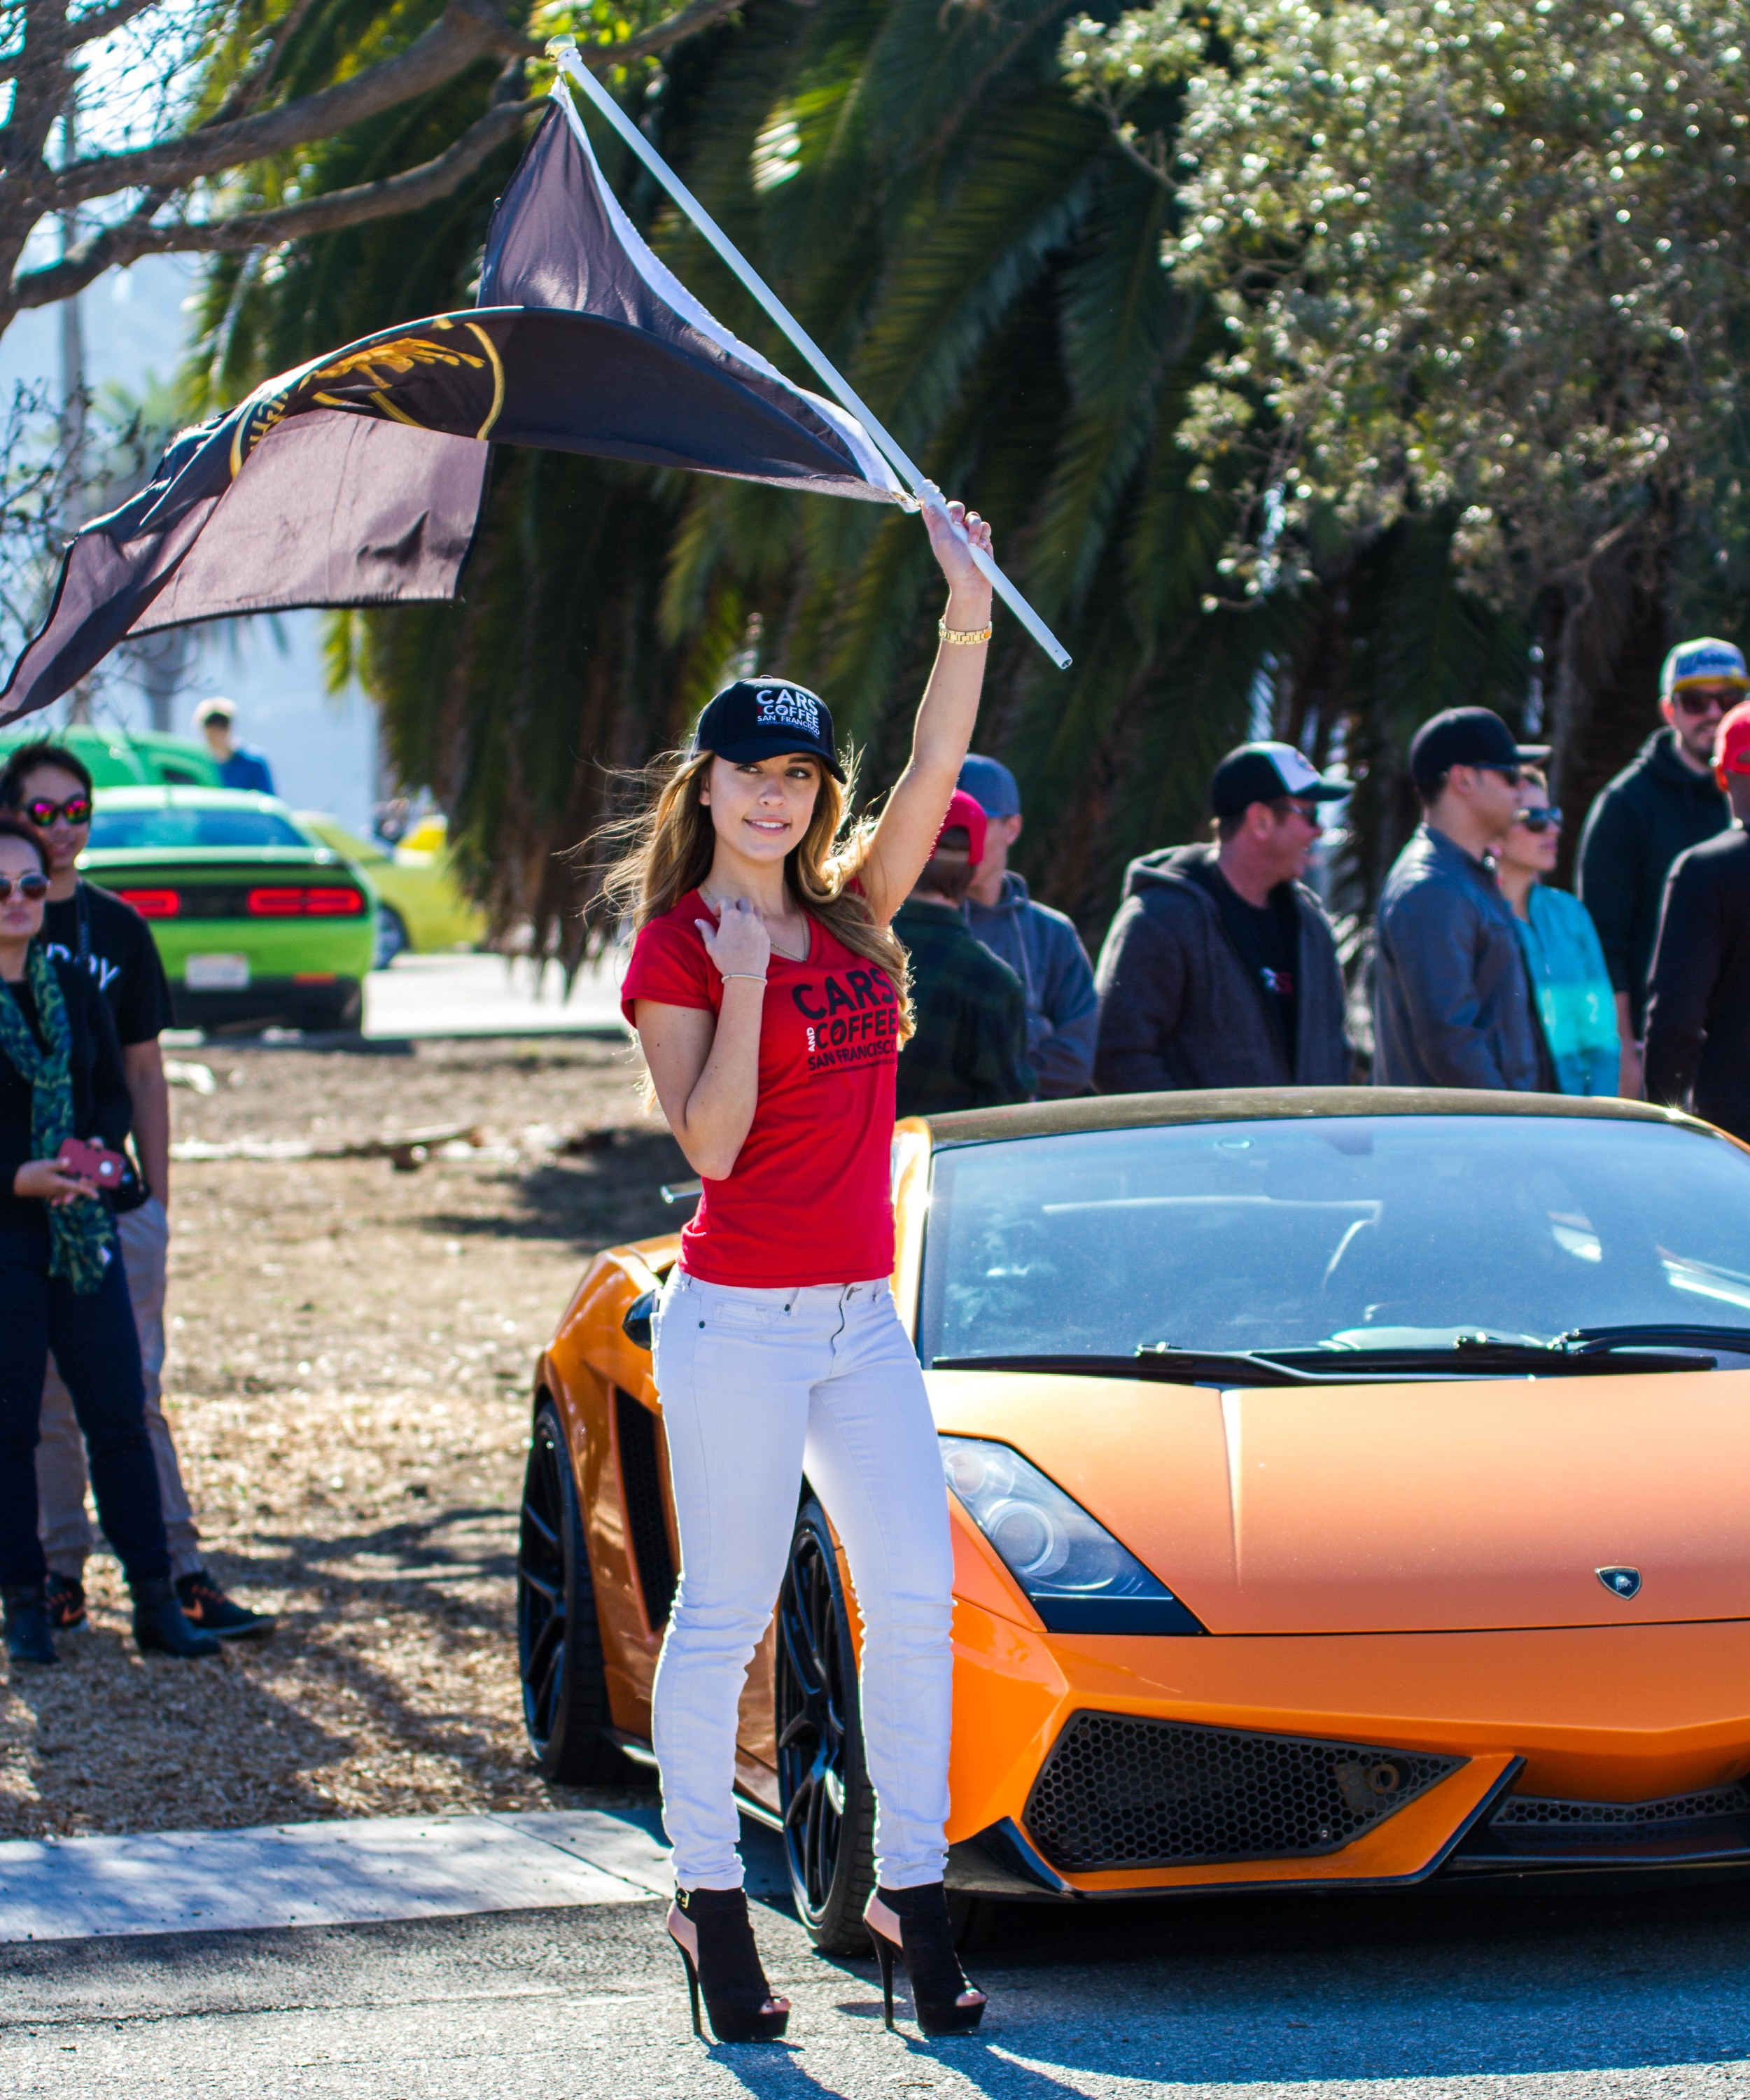 One of the Cars and Coffee San Francisco Girls holding a Lamborghini flag in front of a Lamborghini Gallardo.